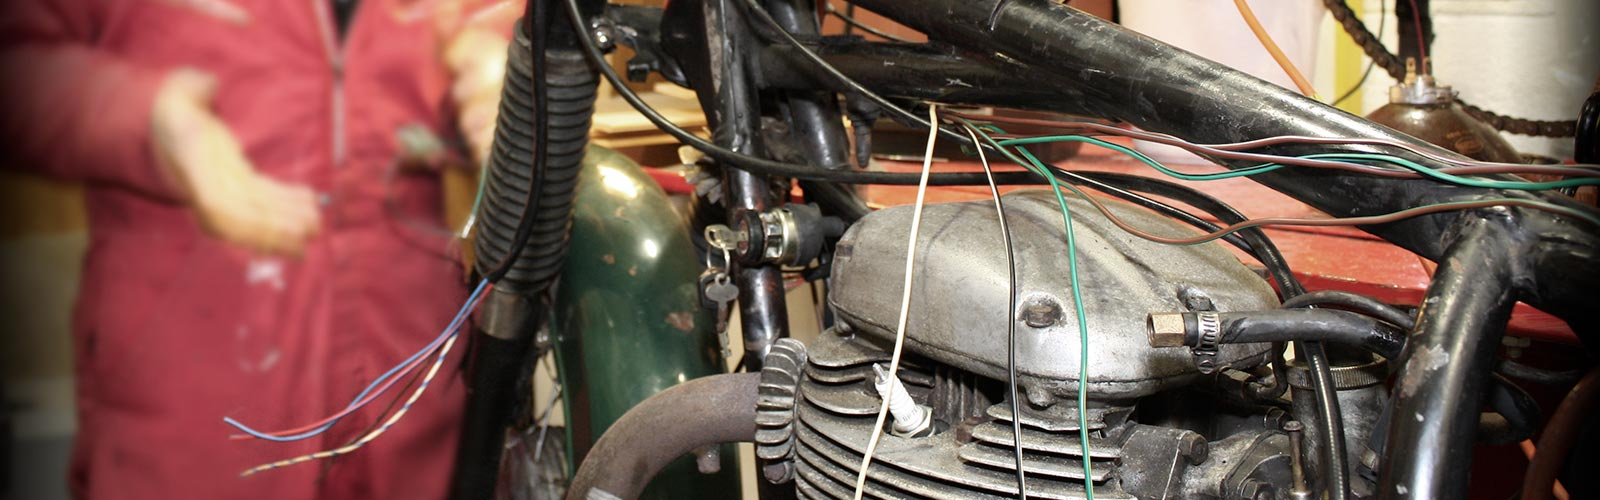 Faq Custom Motorcycle Wiring Loom Auto And Electrical